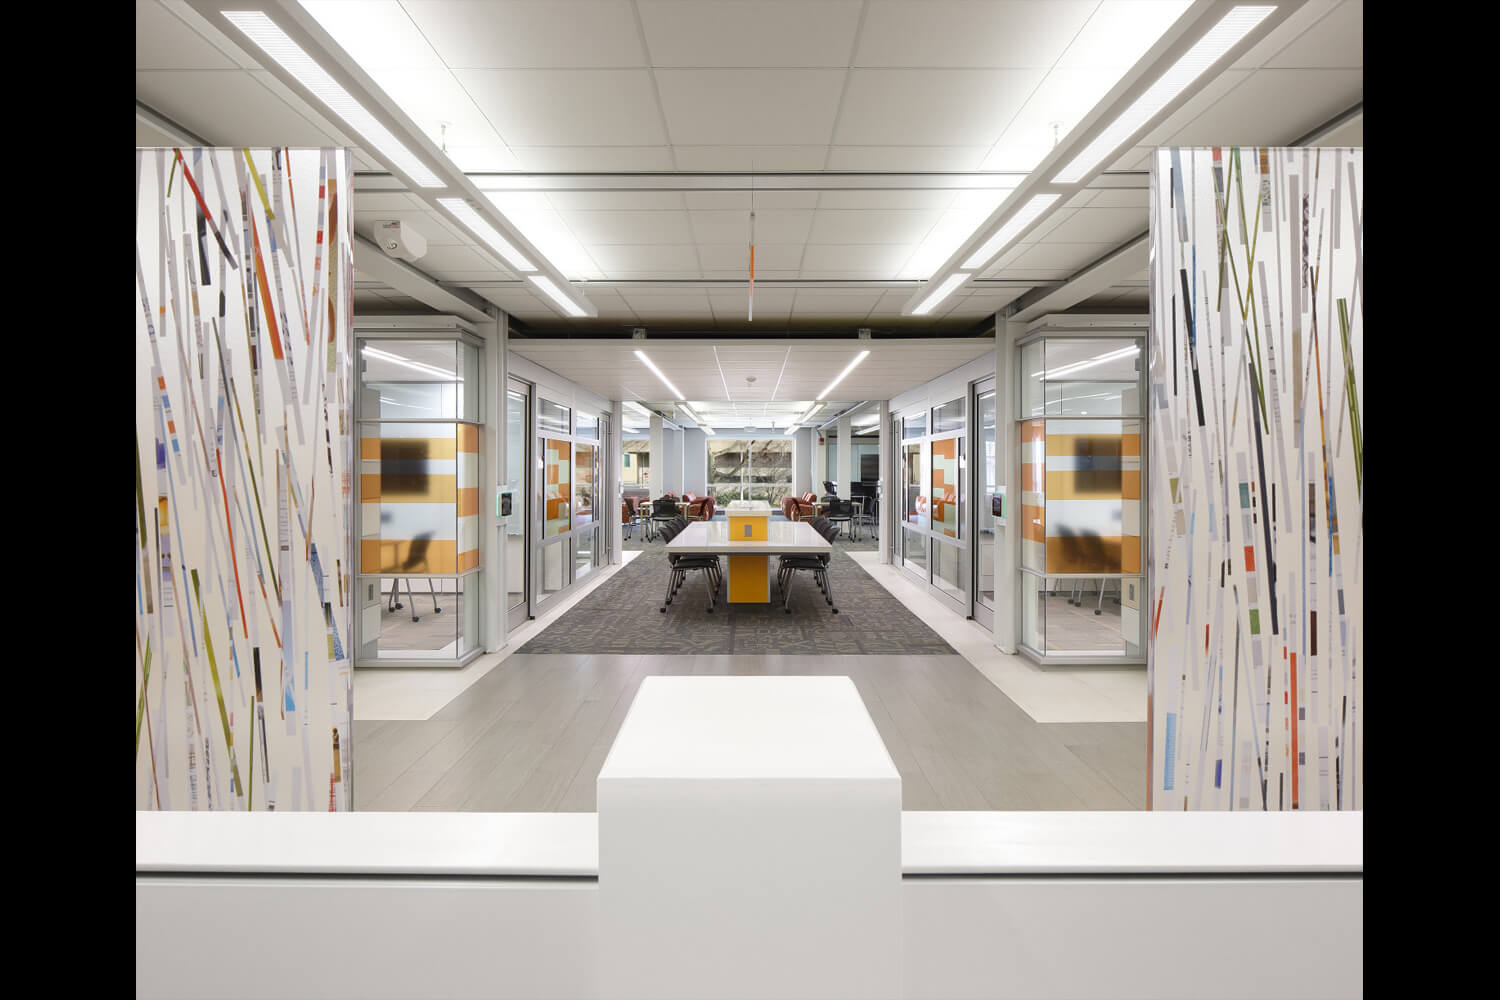 cmba-architects-portfolio-library-Learning-Commons-07